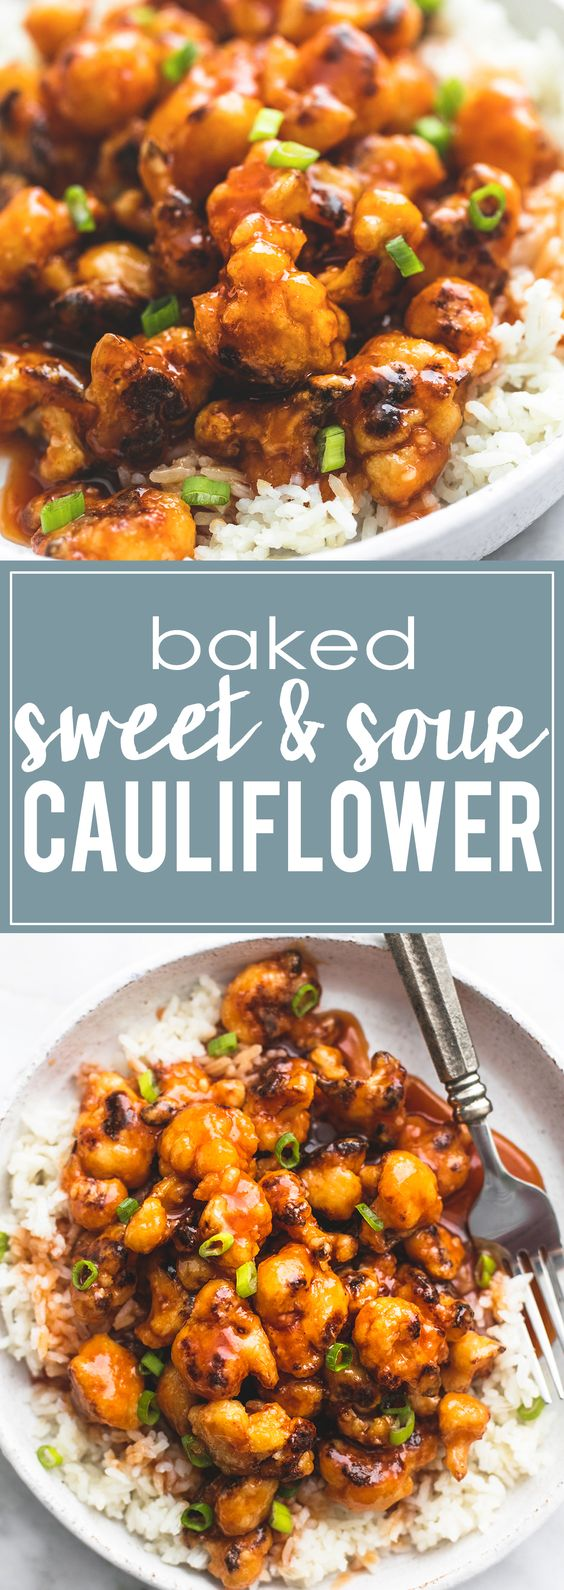 BAKED SWEET & SOUR CAULIFLOWER  #masonjar #healthy #recipes #greatist #vegetarian #breakfast #brunch  #legumes #chicken #casseroles #tortilla #homemade #popularrcipes #poultry #delicious #pastafoodrecipes  #Easy #Spices #ChopSuey #Soup #Classic #gingerbread #ginger #cake #classic #baking #dessert #recipes #christmas #dessertrecipes #Vegetarian #Food #Fish #Dessert #Lunch #Dinner #SnackRecipes #BeefRecipes #DrinkRecipes #CookbookRecipesEasy #HealthyRecipes #AllRecipes #ChickenRecipes #CookiesRecipes #ріzzа #pizzarecipe #vеgеtаrіаn #vegetarianrecipes #vеggіеѕ #vеgеtаblеѕ #grееnріzzа #vеggіеріzzа #feta #pesto #artichokes #brоссоlіSаvе   #recipesfordinner #recipesfordinnereasy #recipeswithgroundbeef  #recipeseasy #recipesfordinnerhealth #AngeliqueRecipes #RecipeLion #Recipe  #RecipesFromTheBlog #RecipesyouMUST #RecipesfromourFavoriteBloggers #BuzzFeed #Tasty #BuzzFeed #Tasty #rice #ricerecipes #chicken #dinner #dinnerrecipes #easydinner #friedrice #veggiespeas #broccoli #cauliflower #vegies,  #vegetables  #dinnerrecipes #dinnerideas #dinner #dinnerrecipeseasy #dinnerrecipesforfamily #TheDinnerMom #DinnerthenDessert #DinnerattheZoo #QuickandEasyRecipes #DinnerattheZooRecipes #DINNERRecipes #DinnerRecipesSimpleMeals